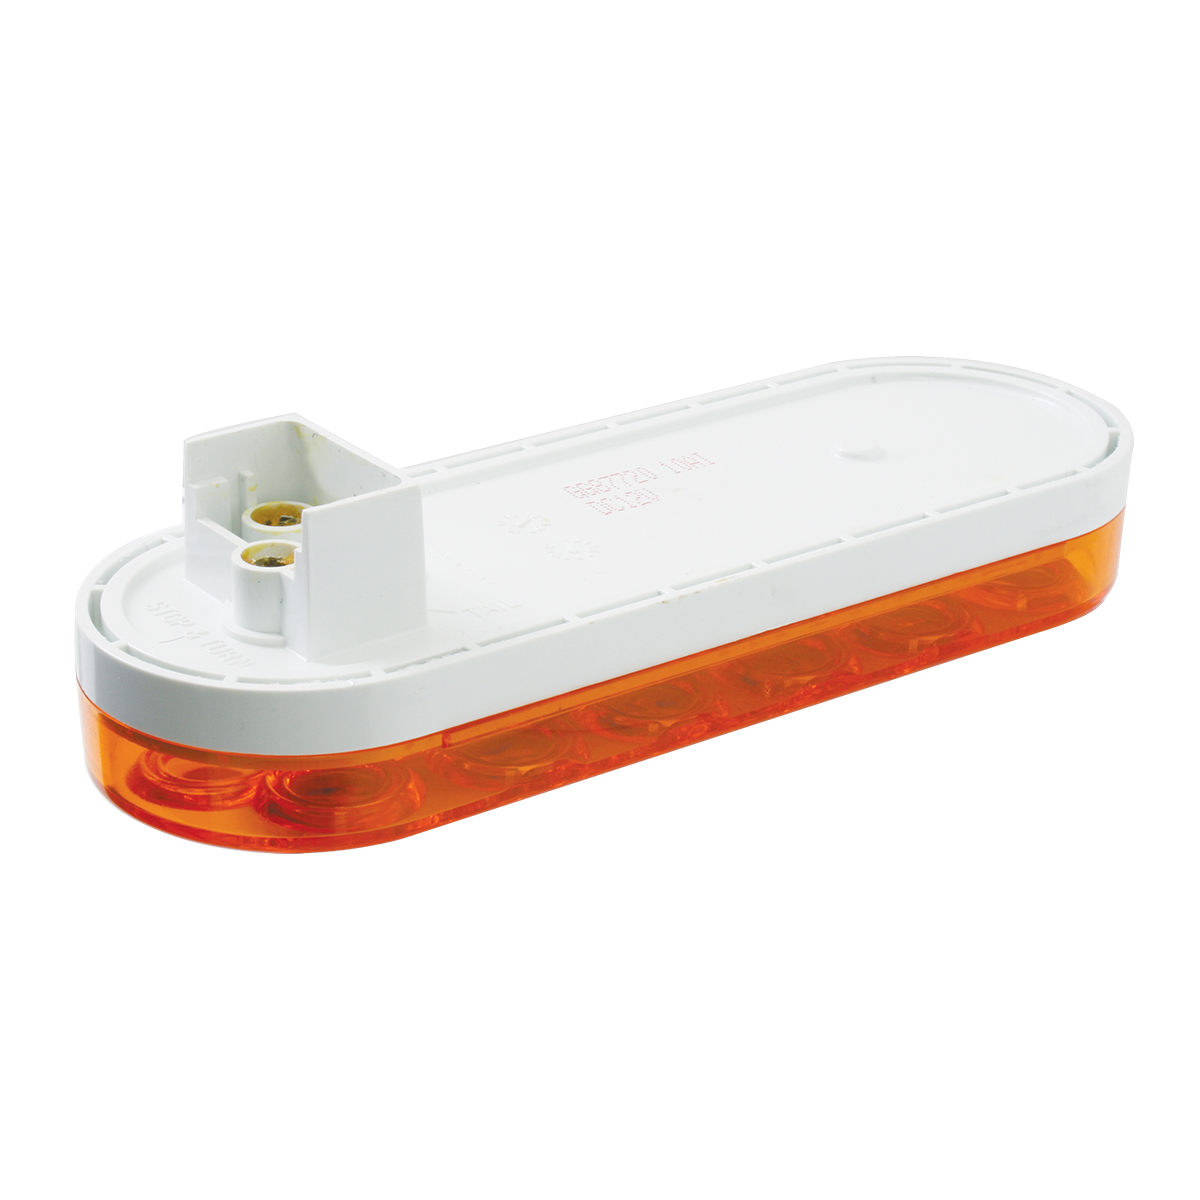 87720 Oval Fleet LED Light in Amber/Amber